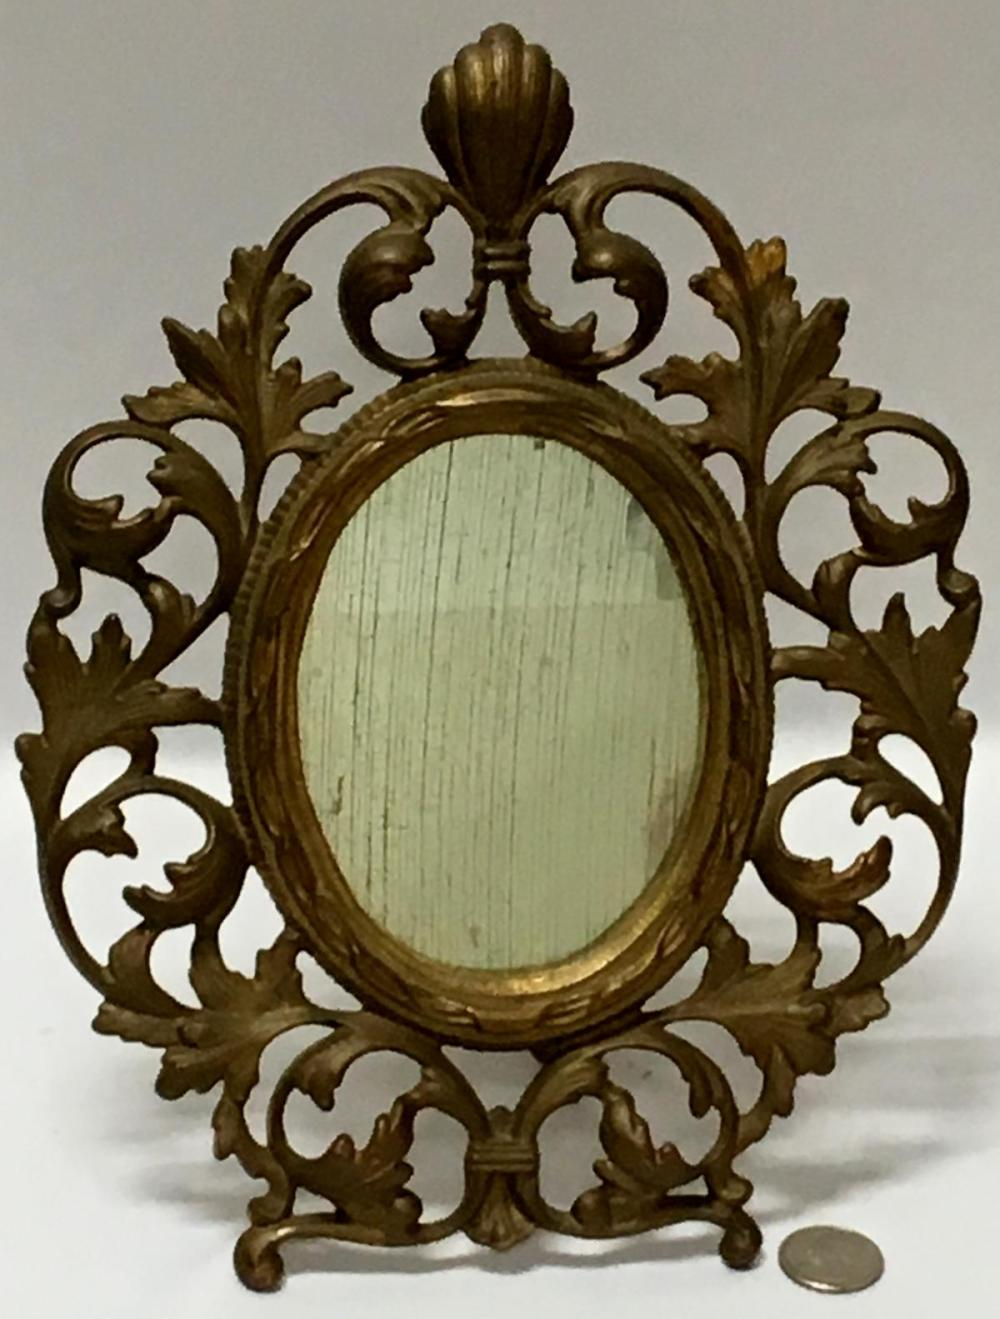 Antique Early 1900's Ornate Brass Desk / Vanity Mirror